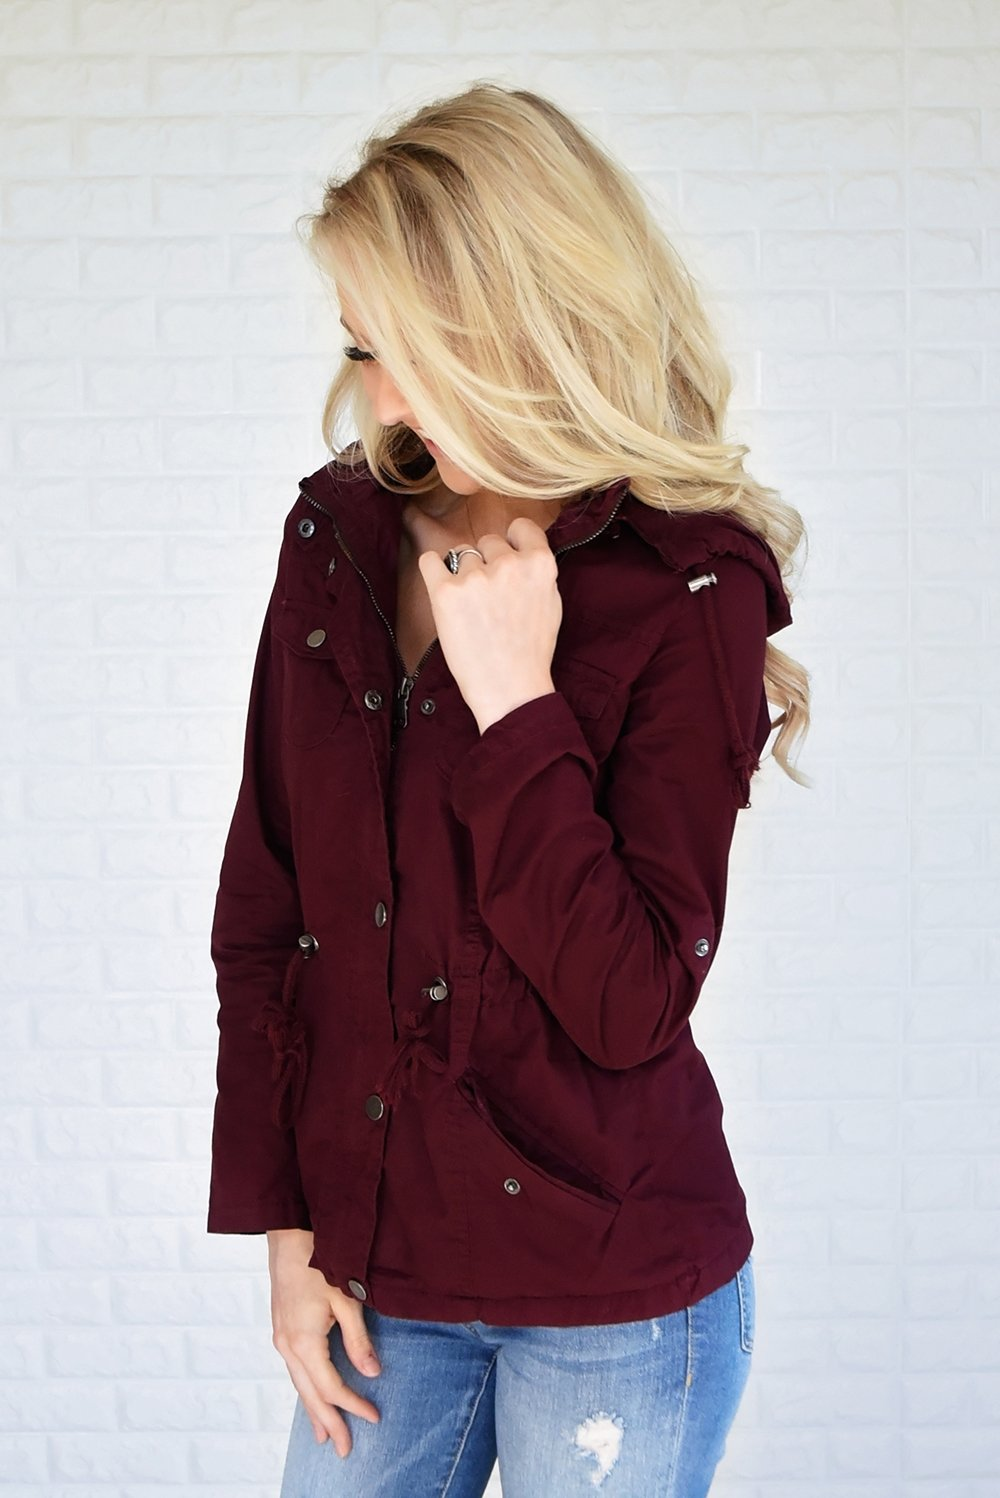 Crisp Leaves & Cool Breeze Fall Jacket ~ Burgundy